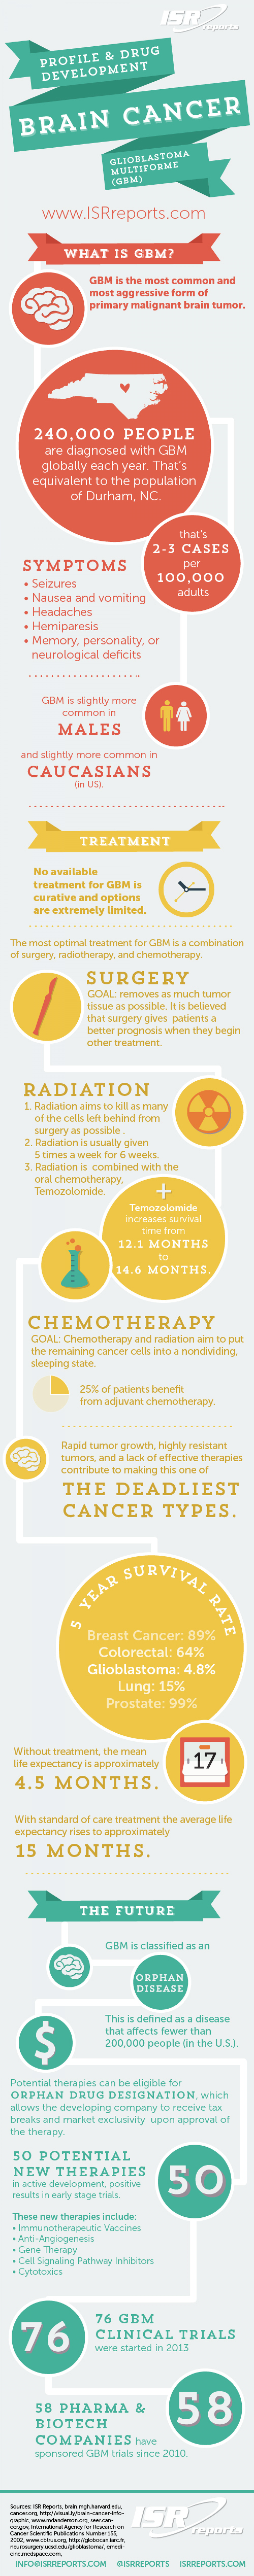 Profile & Drug Development Brain Cancer Glioblastoma Multiforme (GBM) Infographic